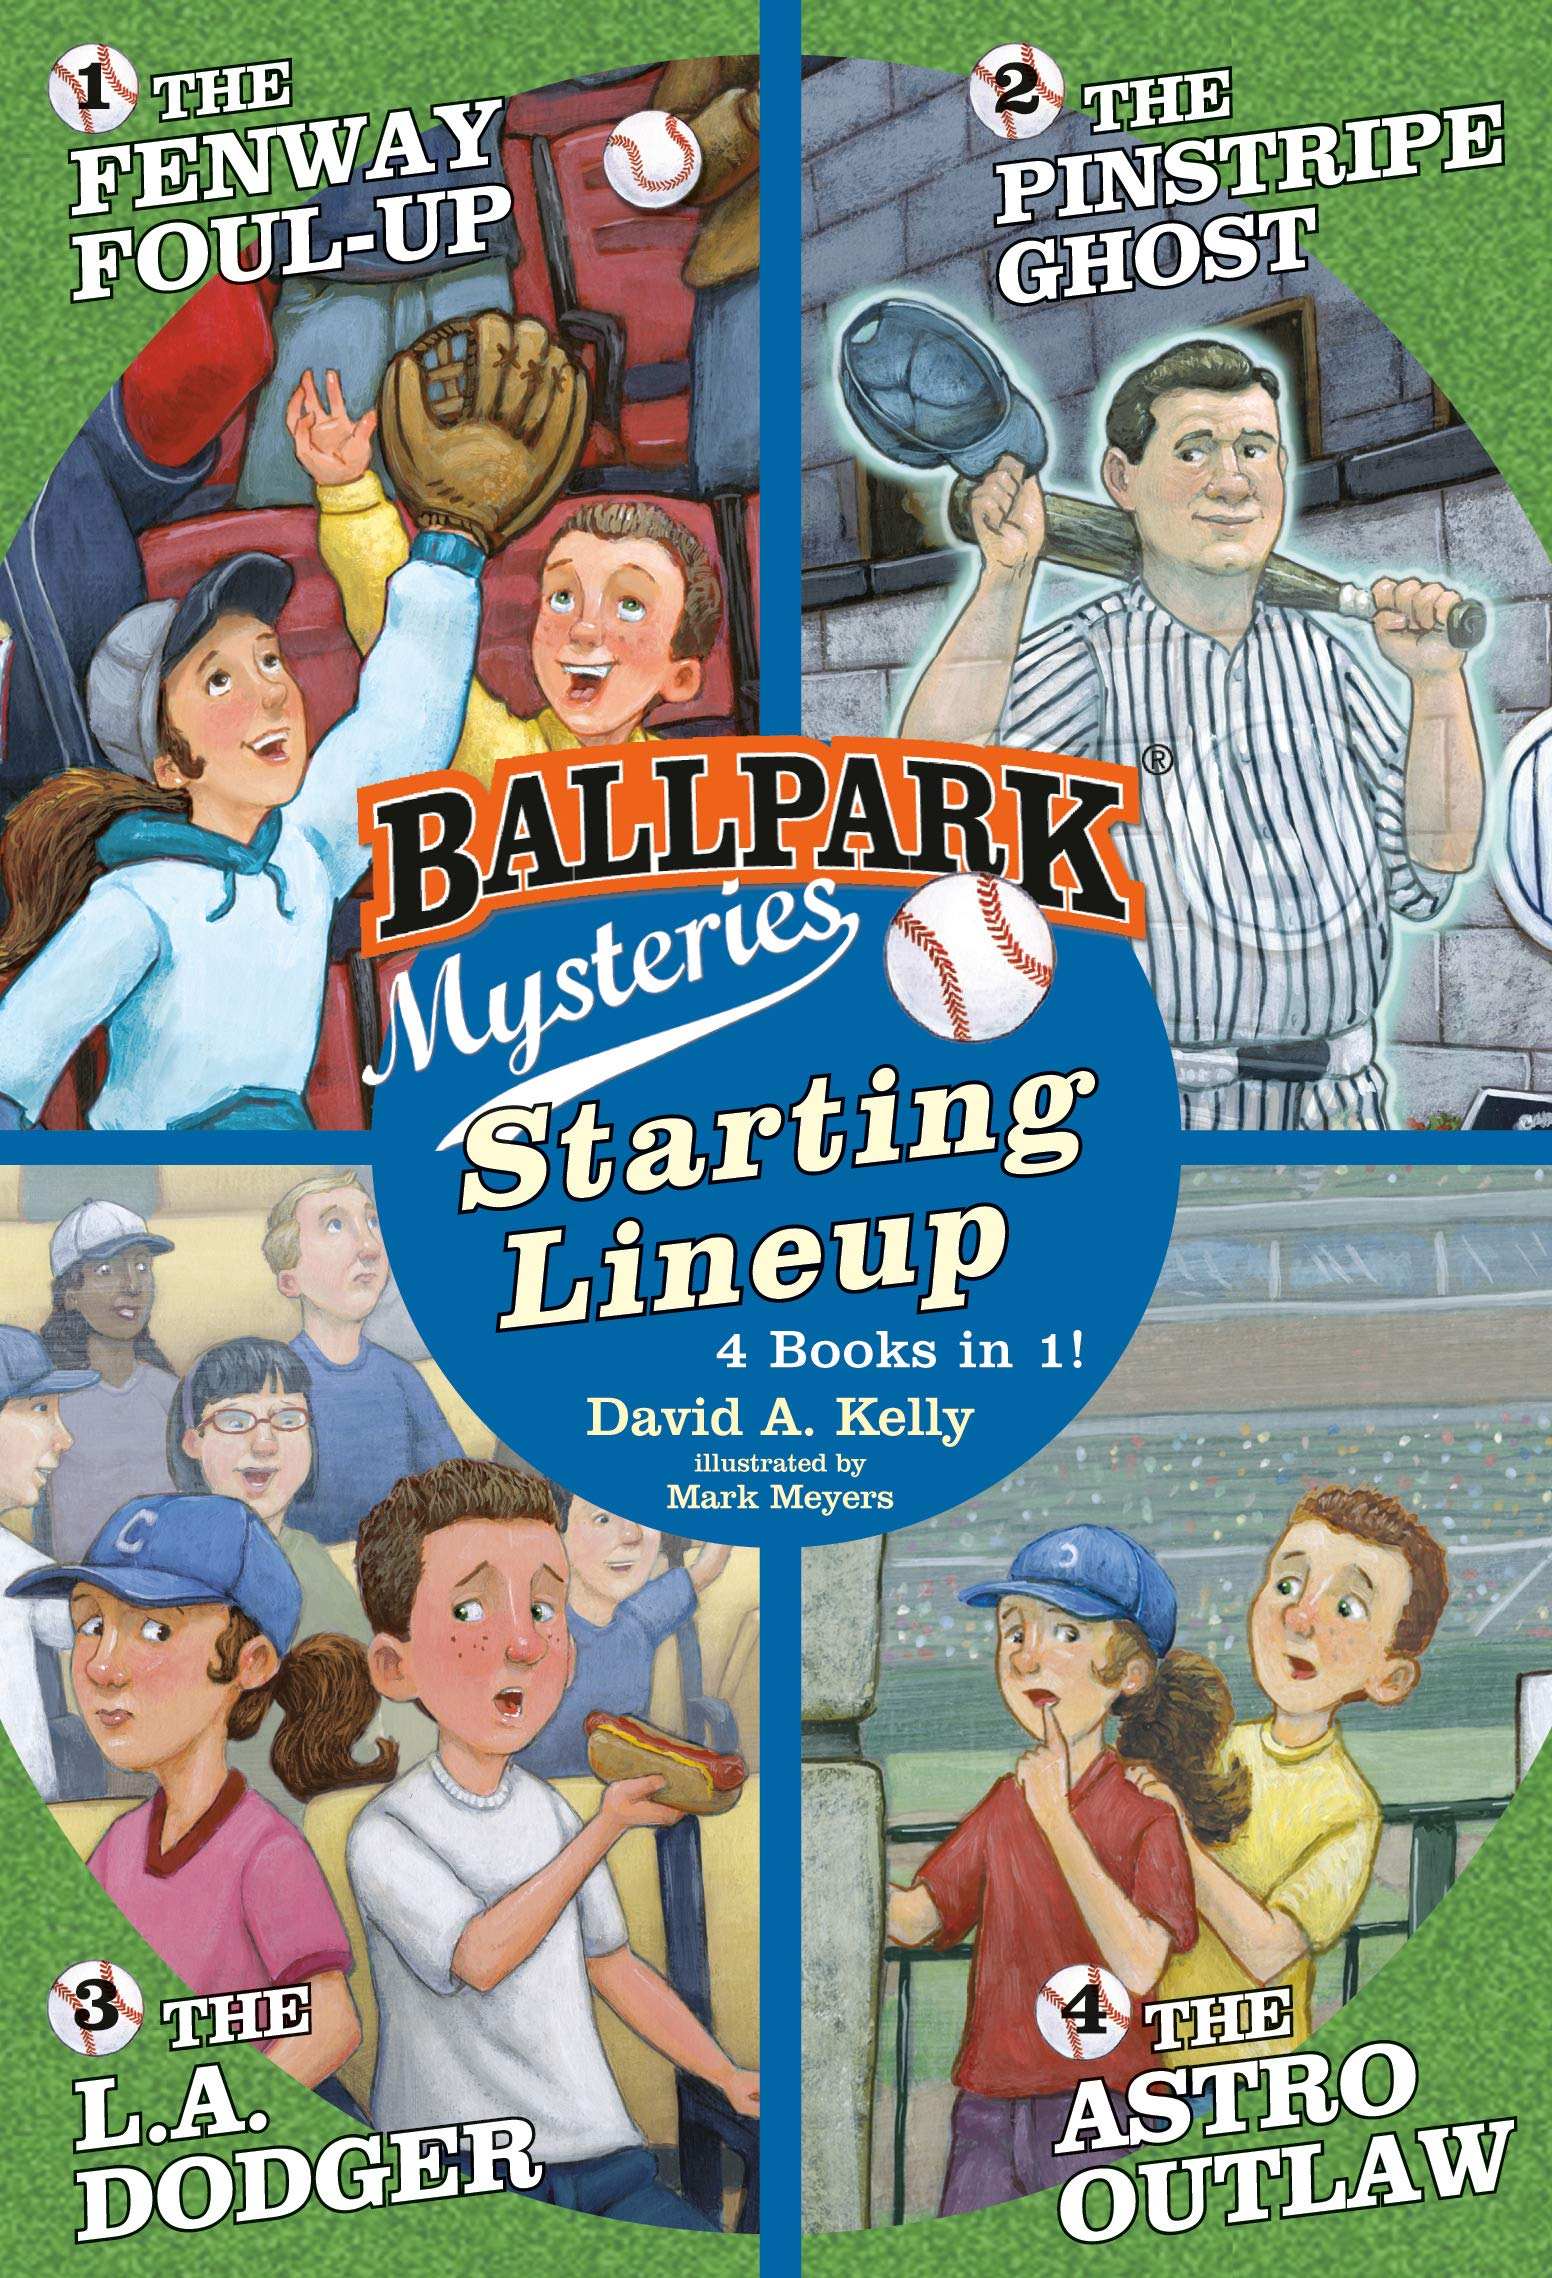 Buy Ballpark Mysteries Starting Lineup Books 1 4 Book Online At Low Prices In India Ballpark Mysteries Starting Lineup Books 1 4 Reviews Ratings Amazon In